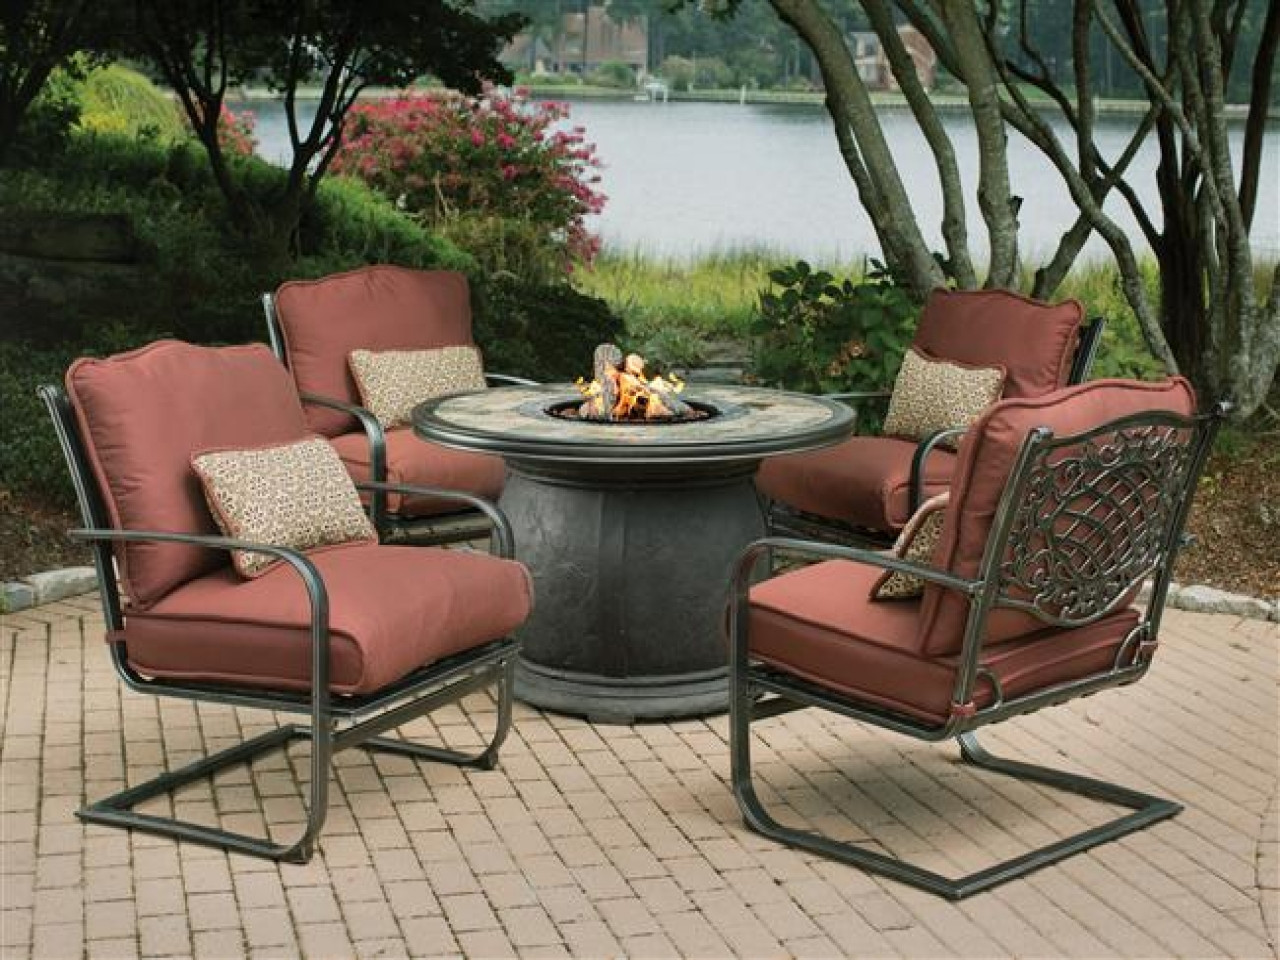 Best ideas about Outdoor Fire Pit Sets . Save or Pin Outdoor table with firepit covered patio fire pit gas Now.